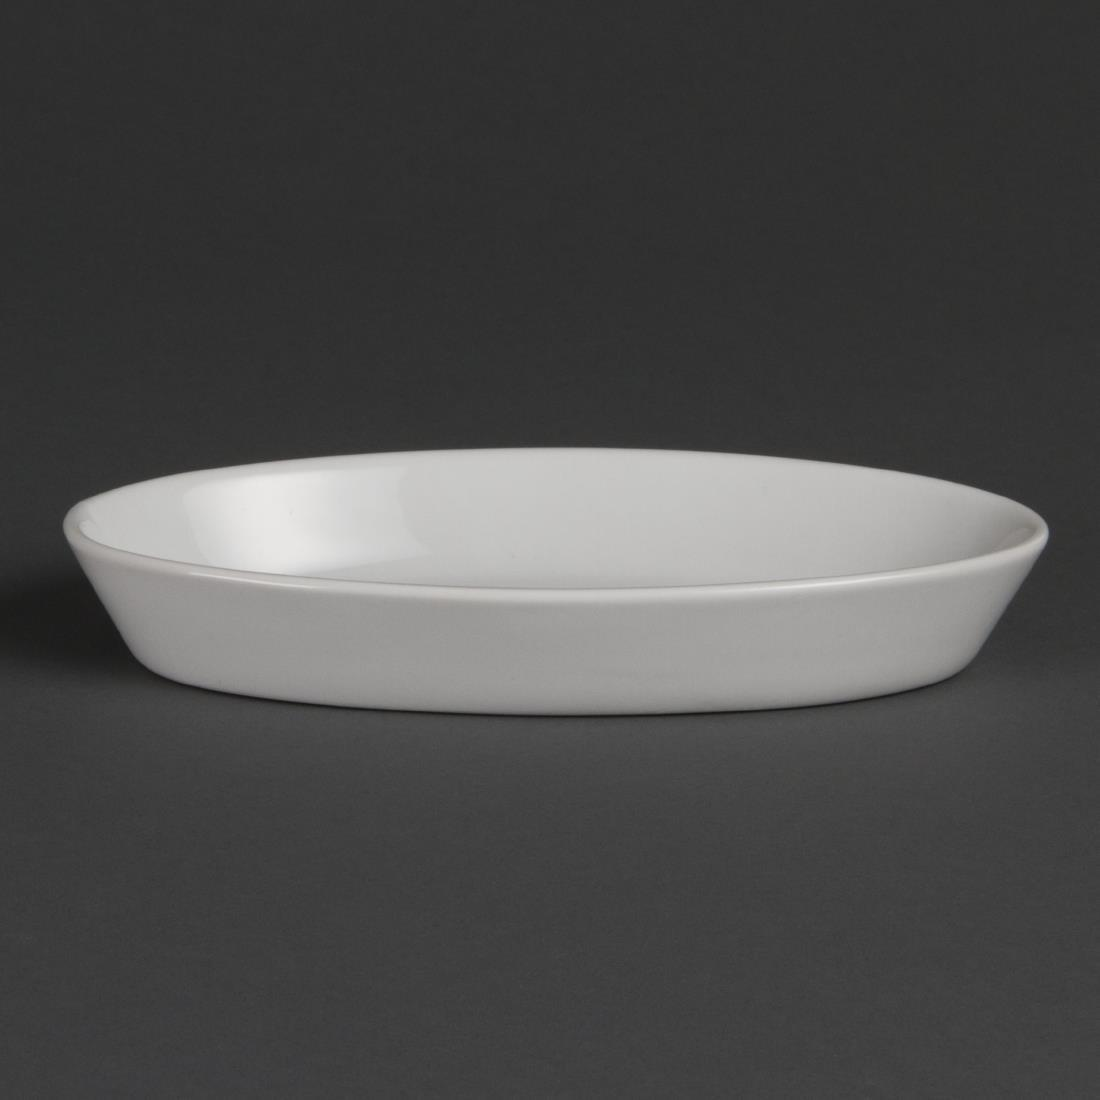 W434 - Olympia Whiteware Oval Sole Dish